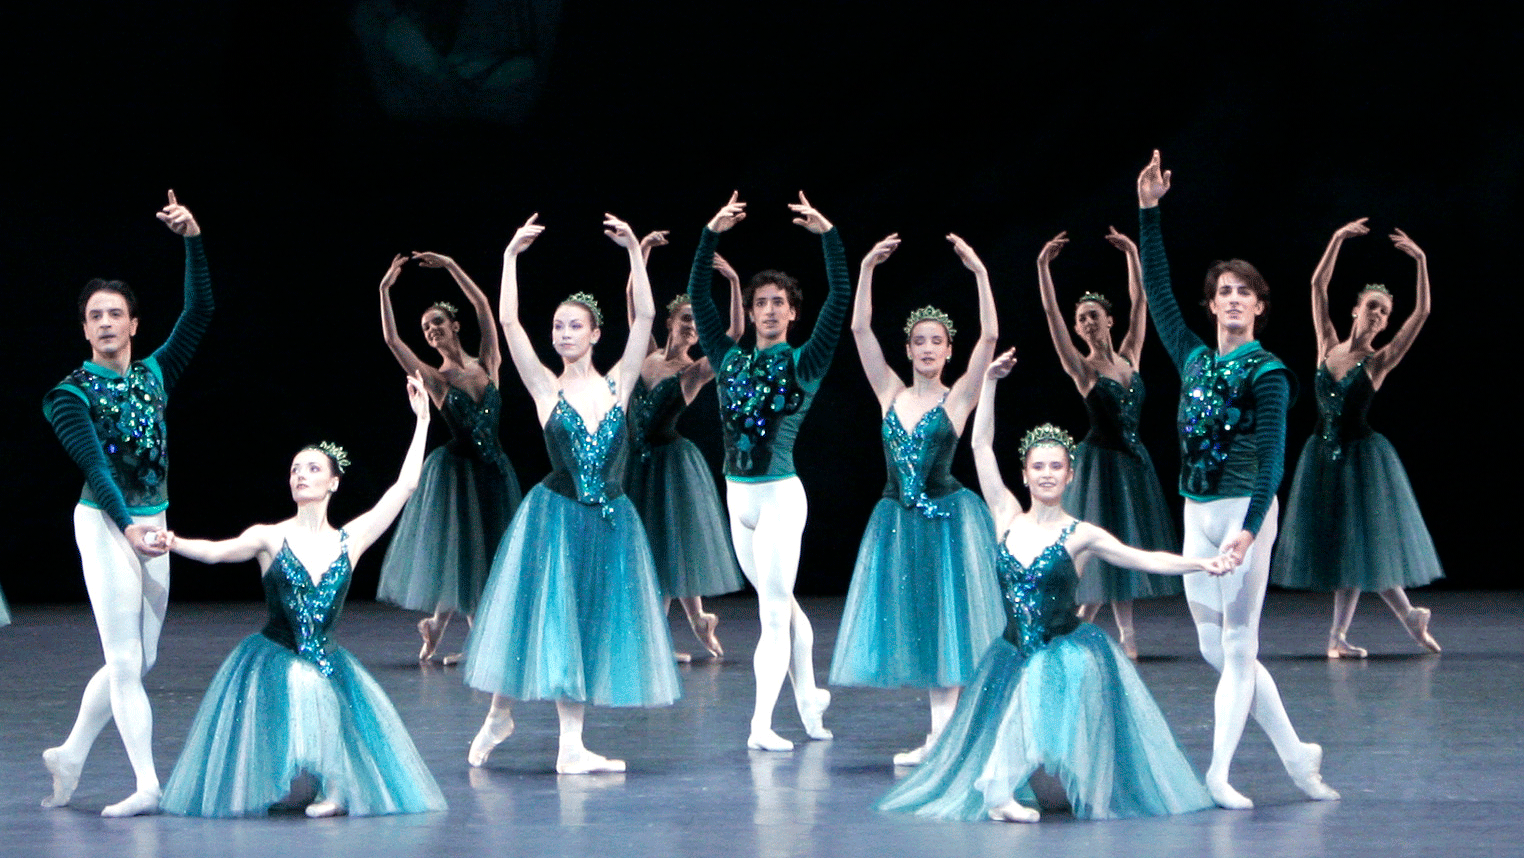 Balanchine's Jewels, music by Fauré, Stravinsky, and Tchaikovsky